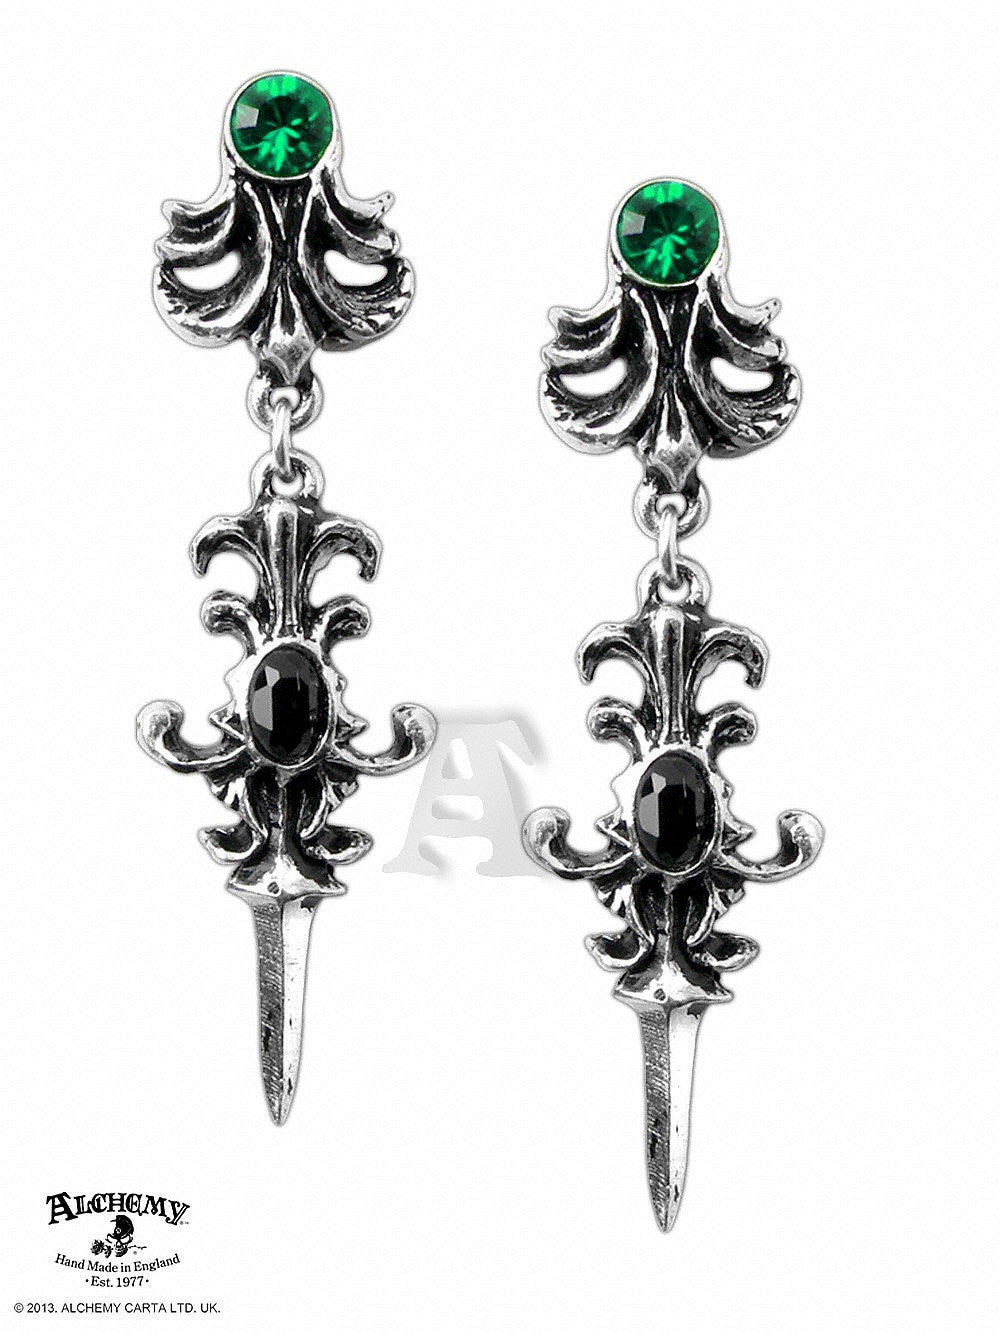 ALCHEMY OF ENGLAND - Westenra Spica Earrings - FETISH